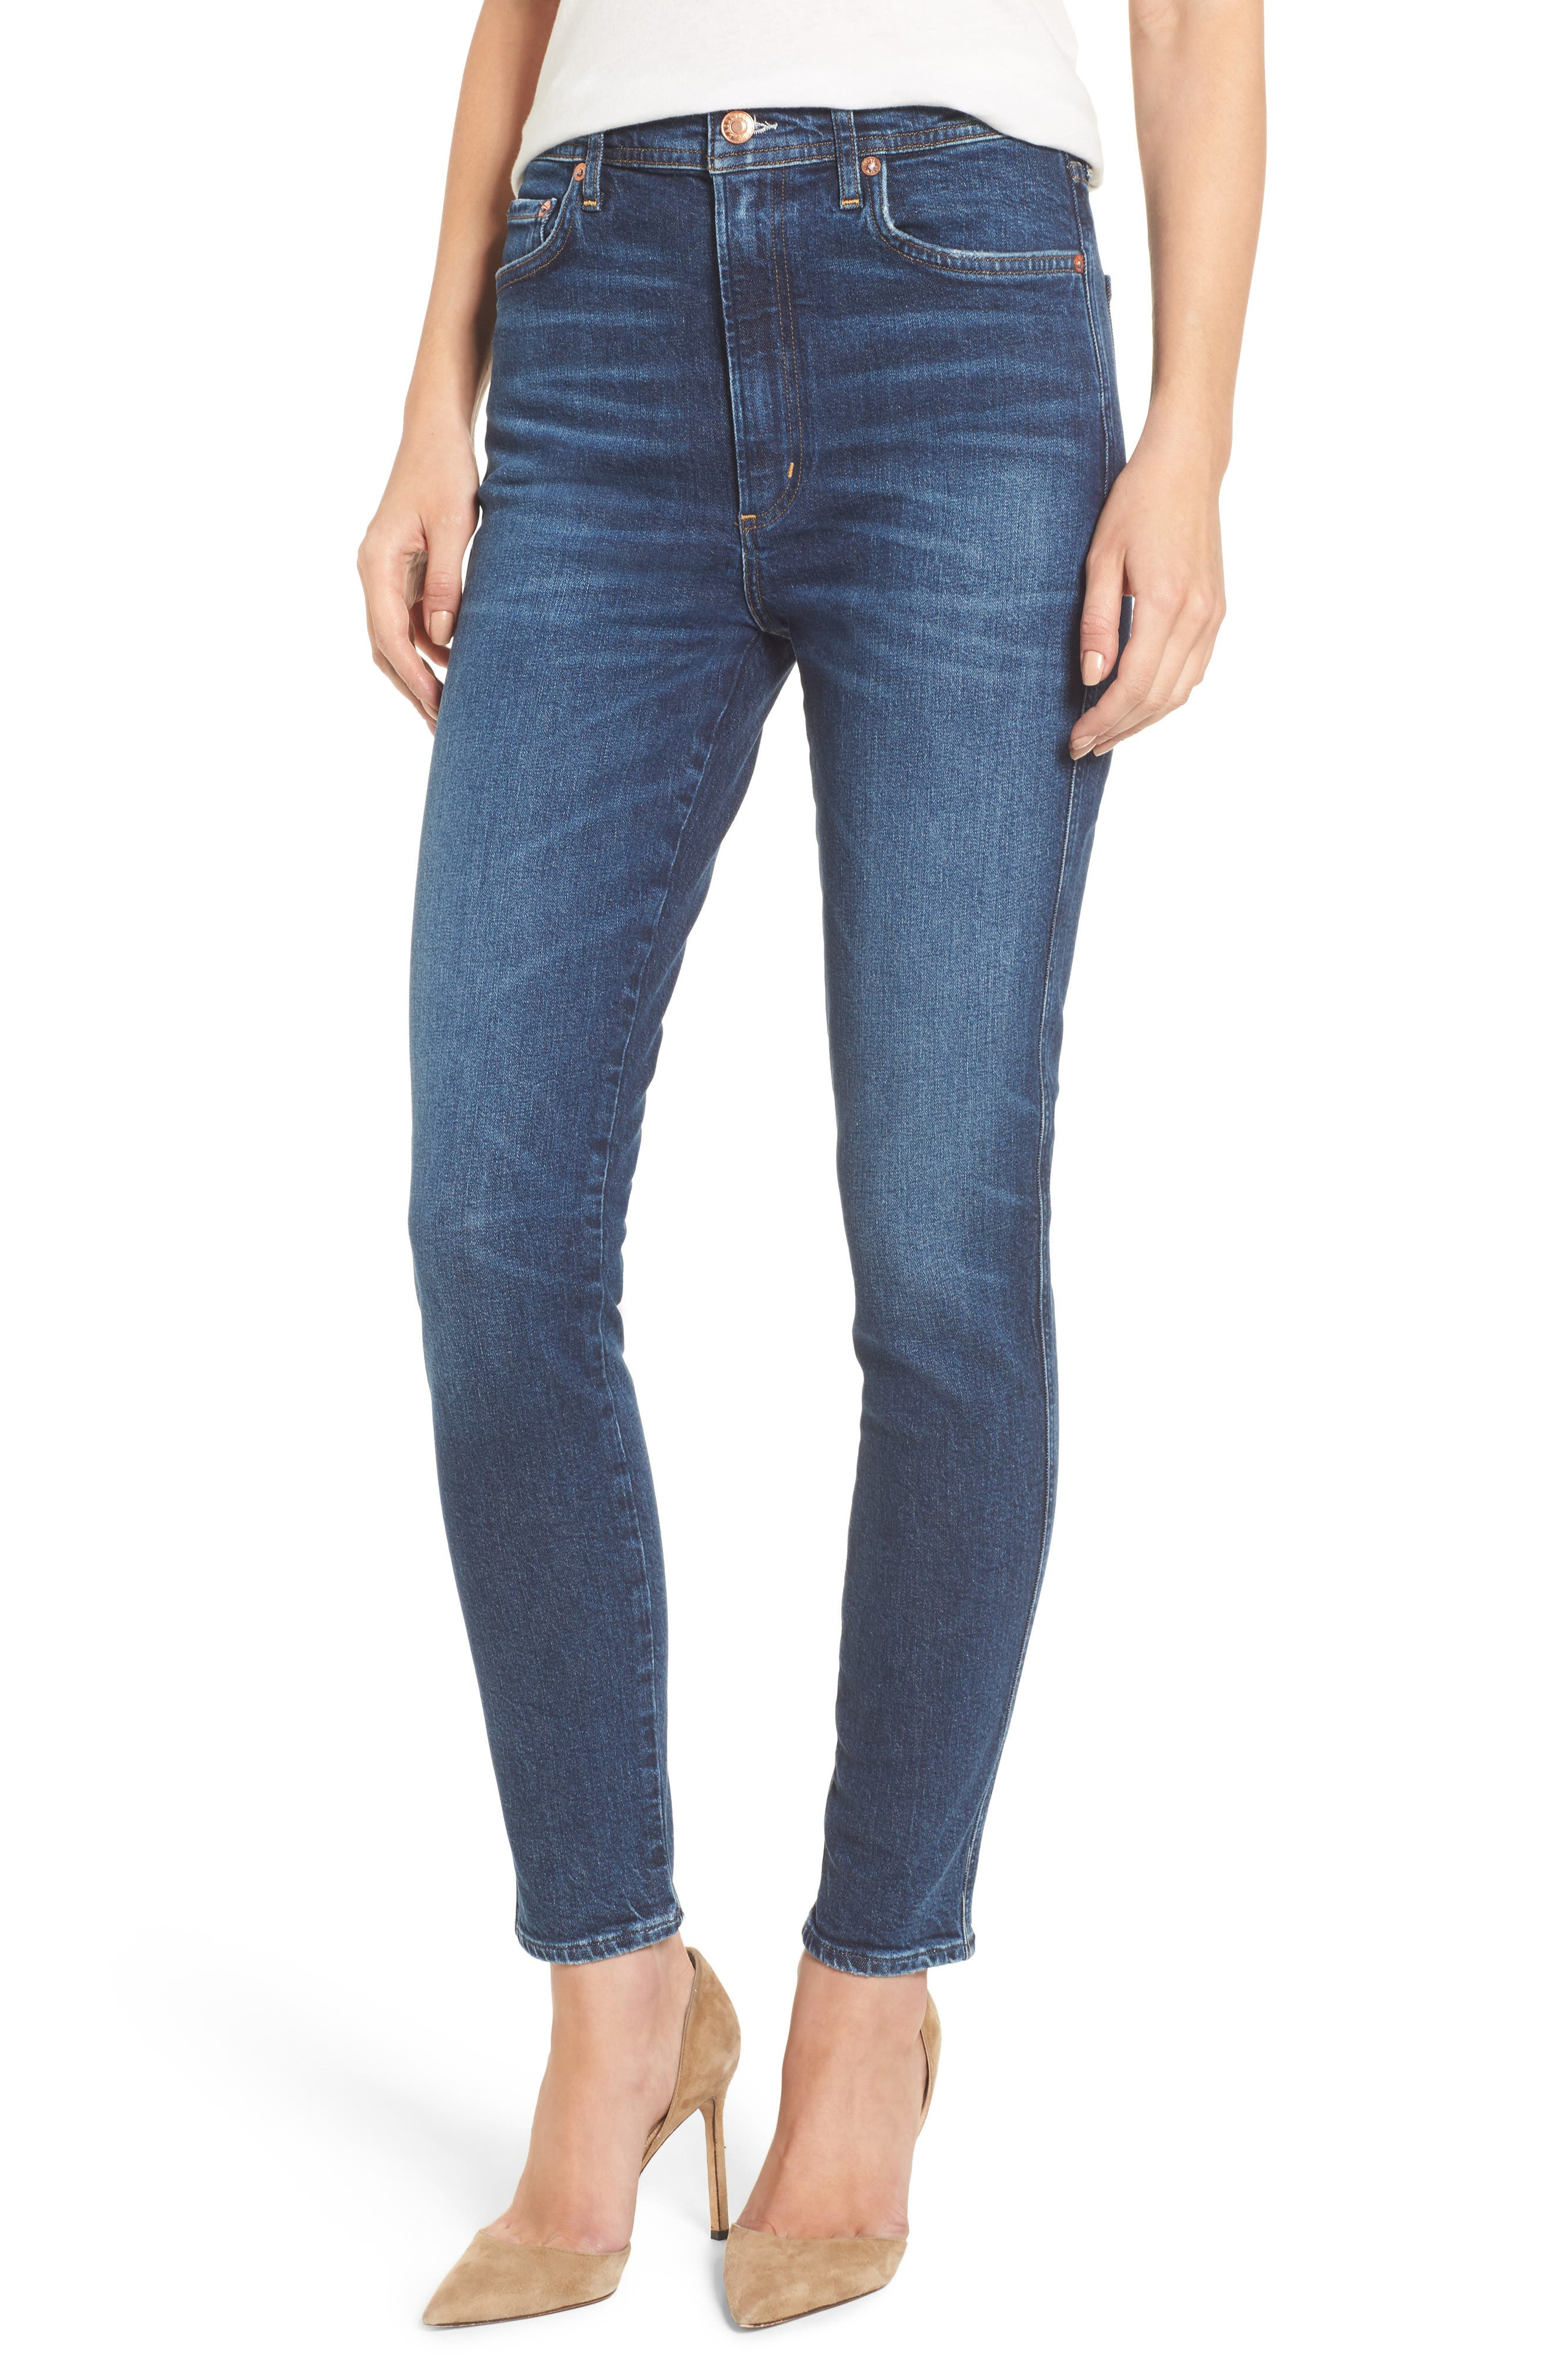 Roxanne Super High Rise Skinny Jeans,                             Main thumbnail 1, color,                             430